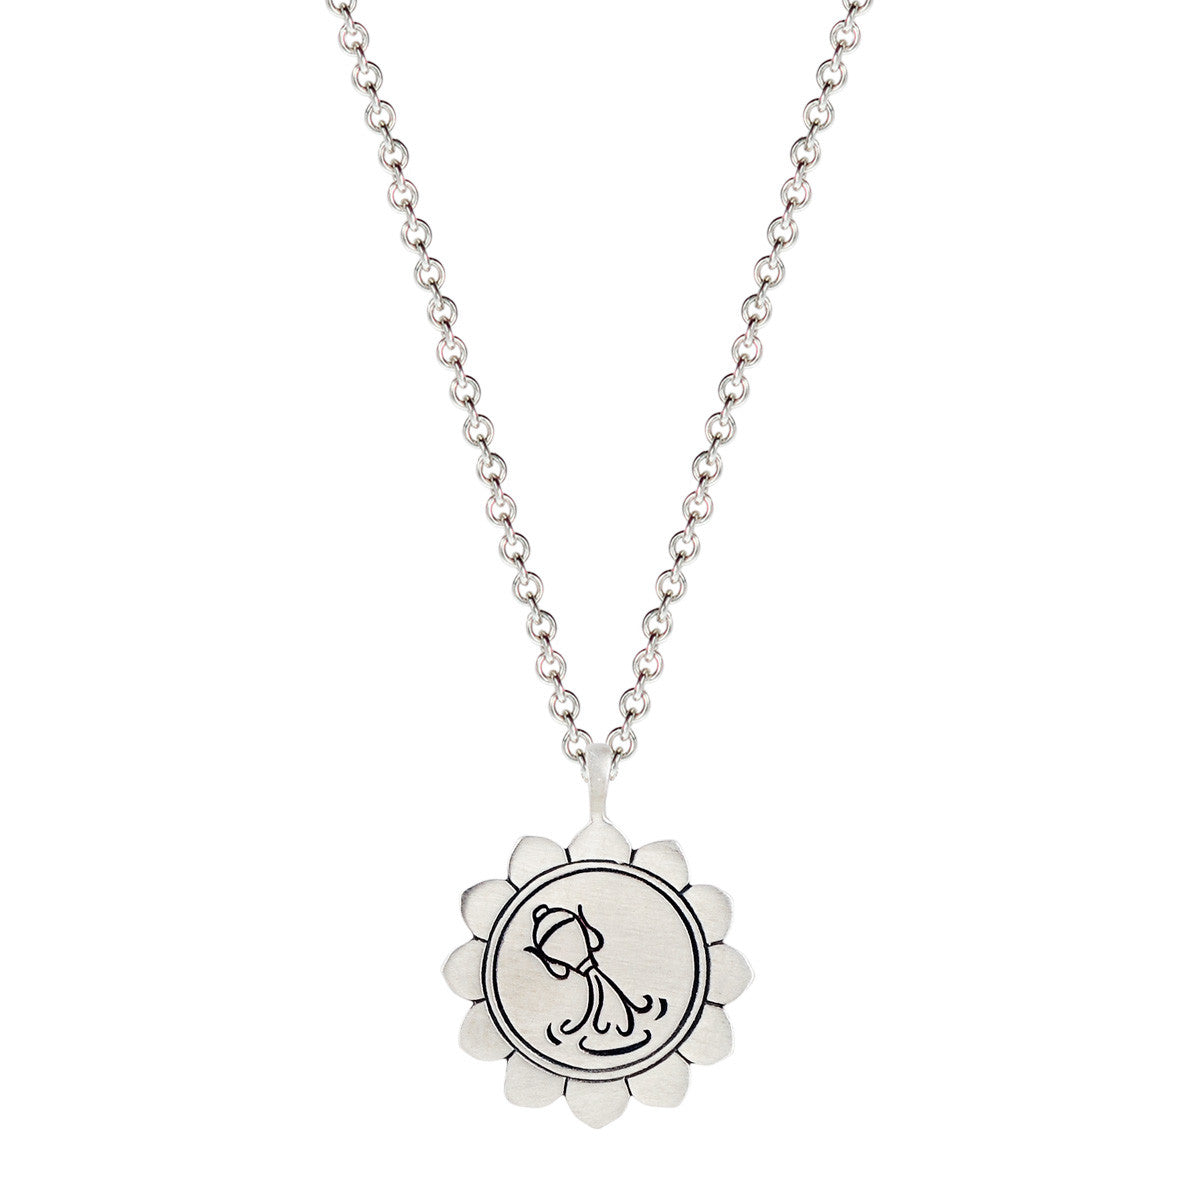 Sterling Silver Medium Lotus Aquarius Astrology Pendant